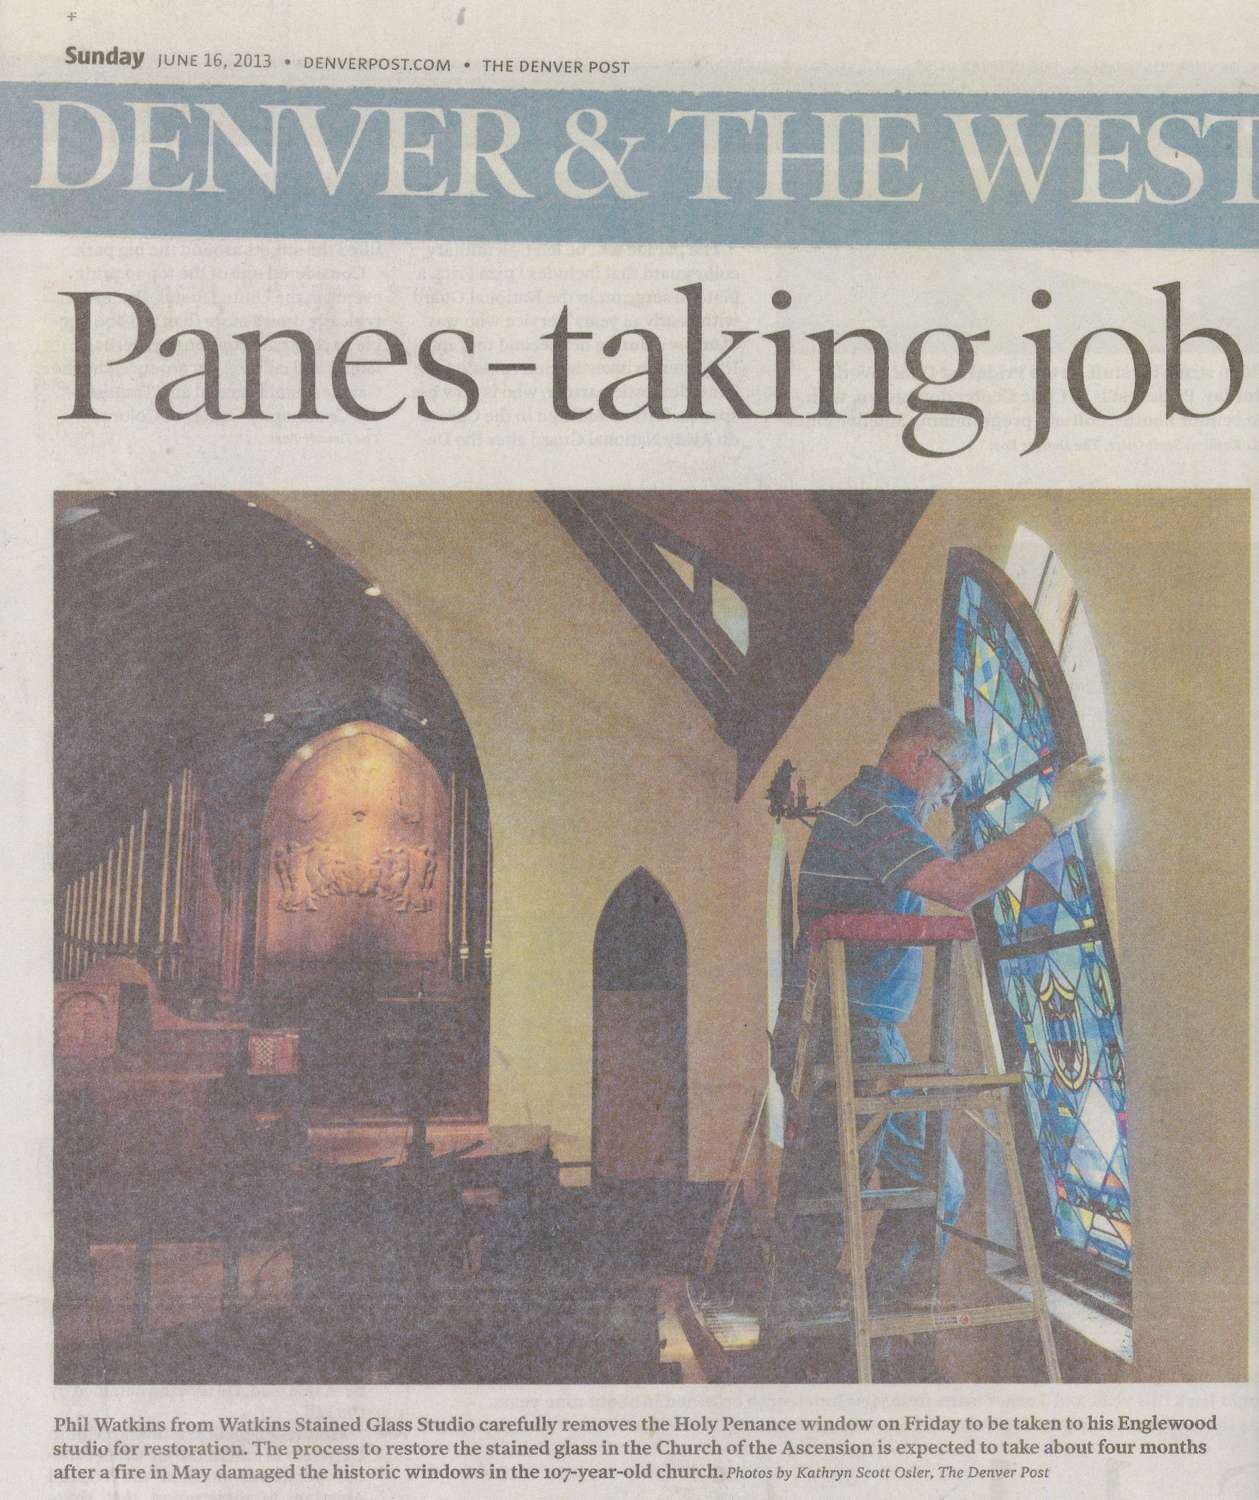 The Denver post job article